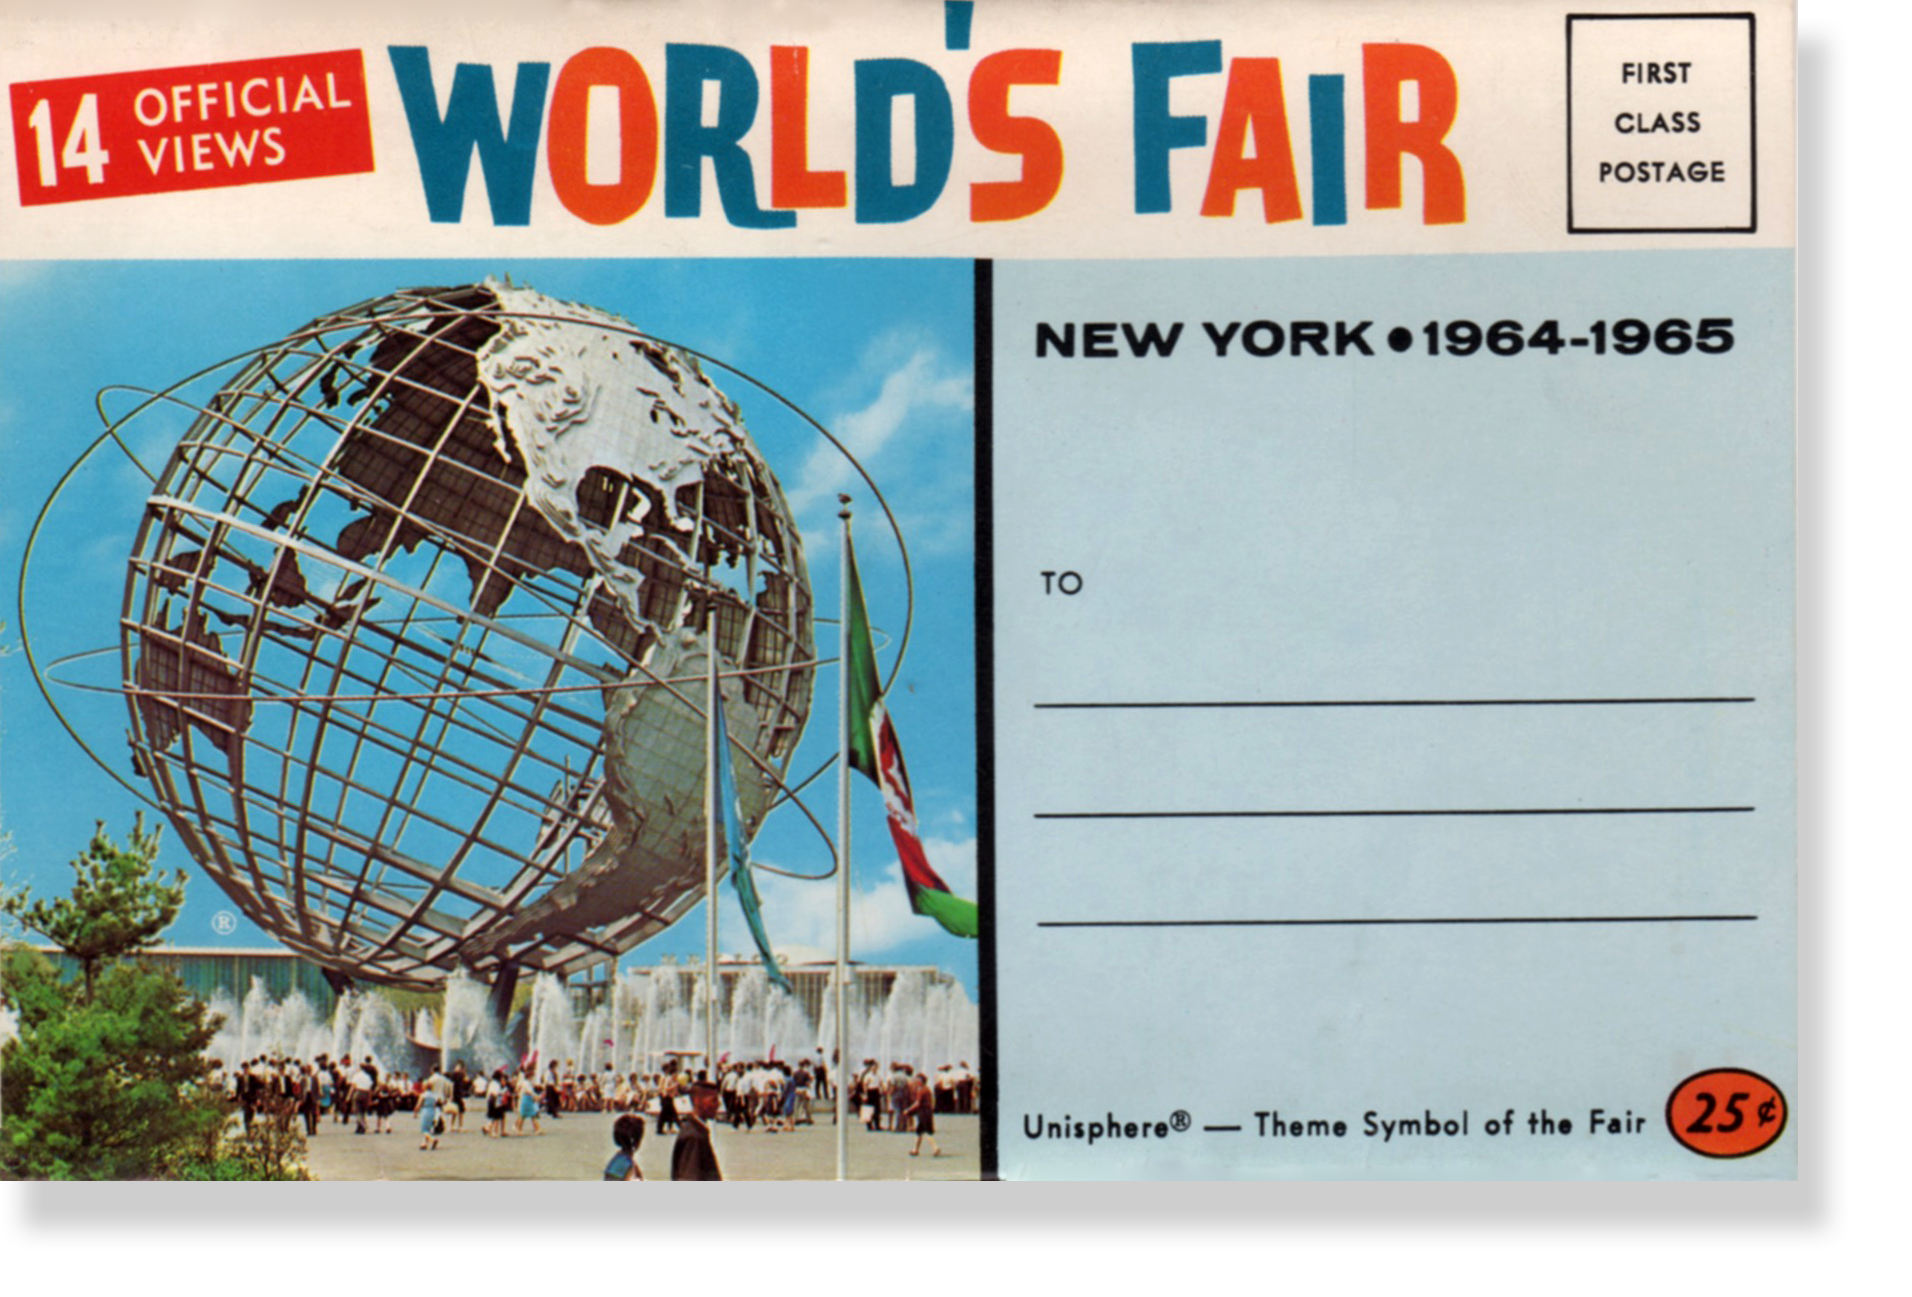 BORN – Queens, NY. Home of the Unisphere